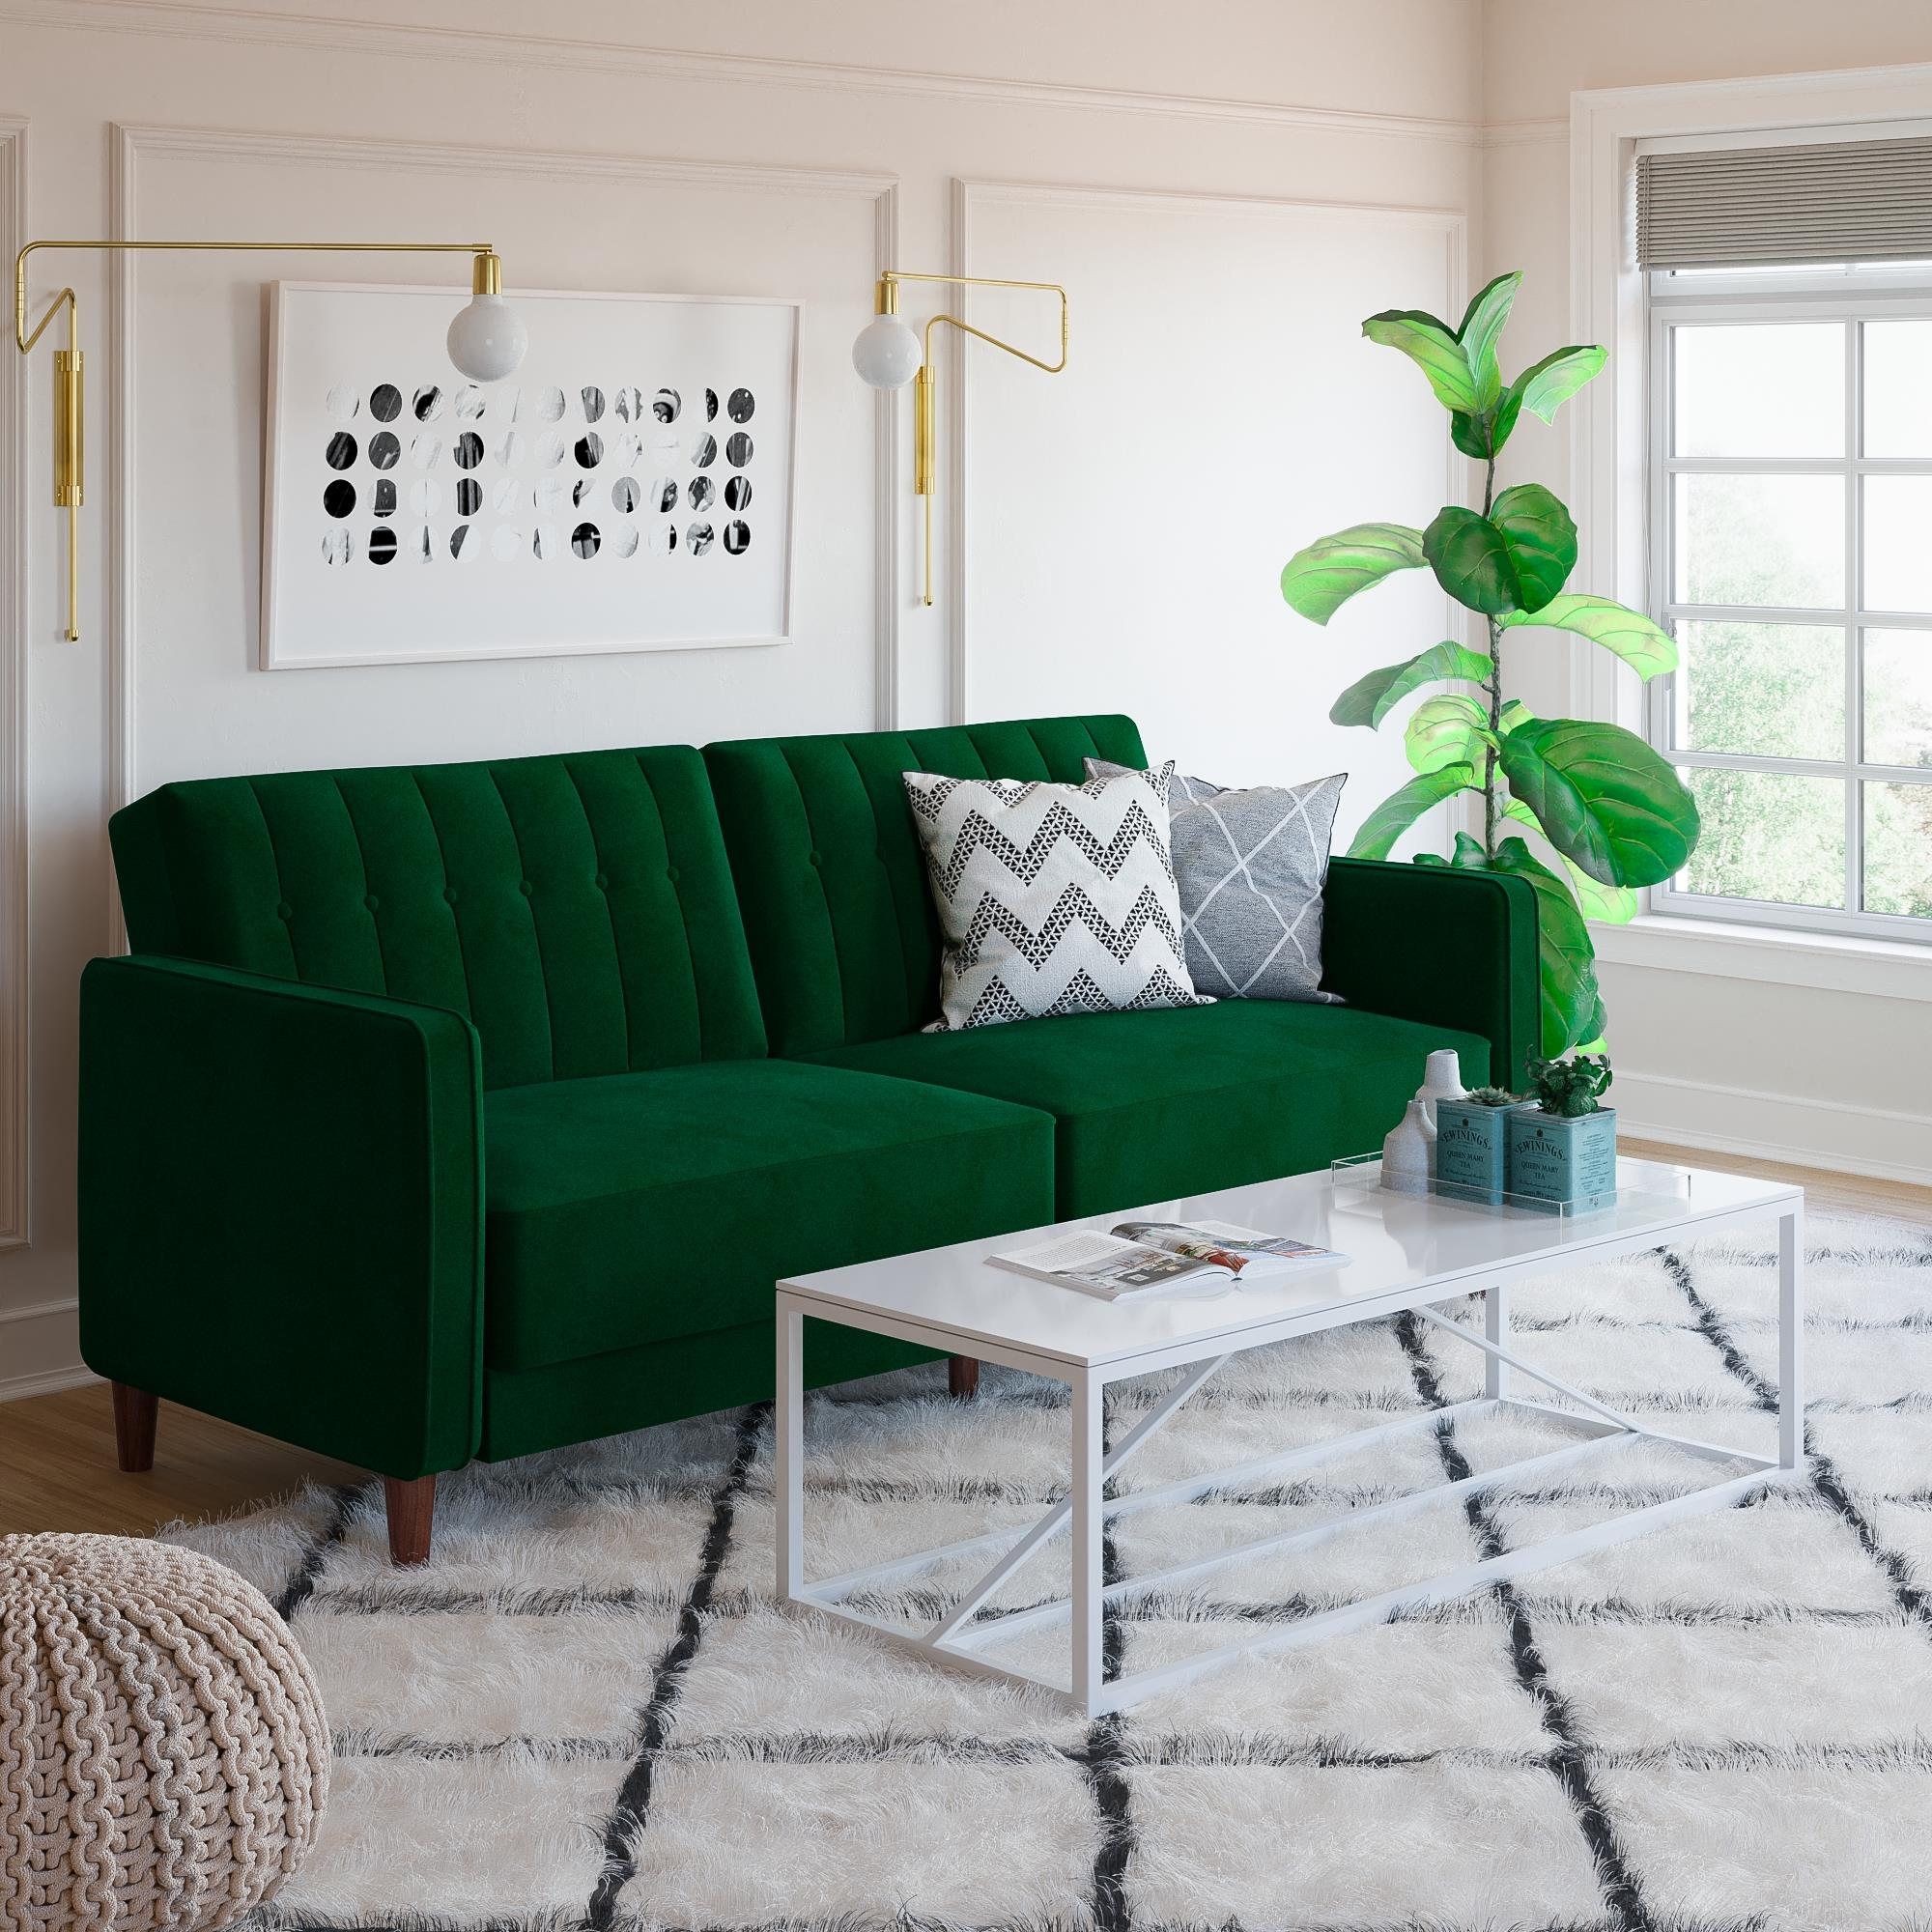 RealRooms Levi Tufted Futon Couch, Soft Velvet Upholstery, Multiple Colors